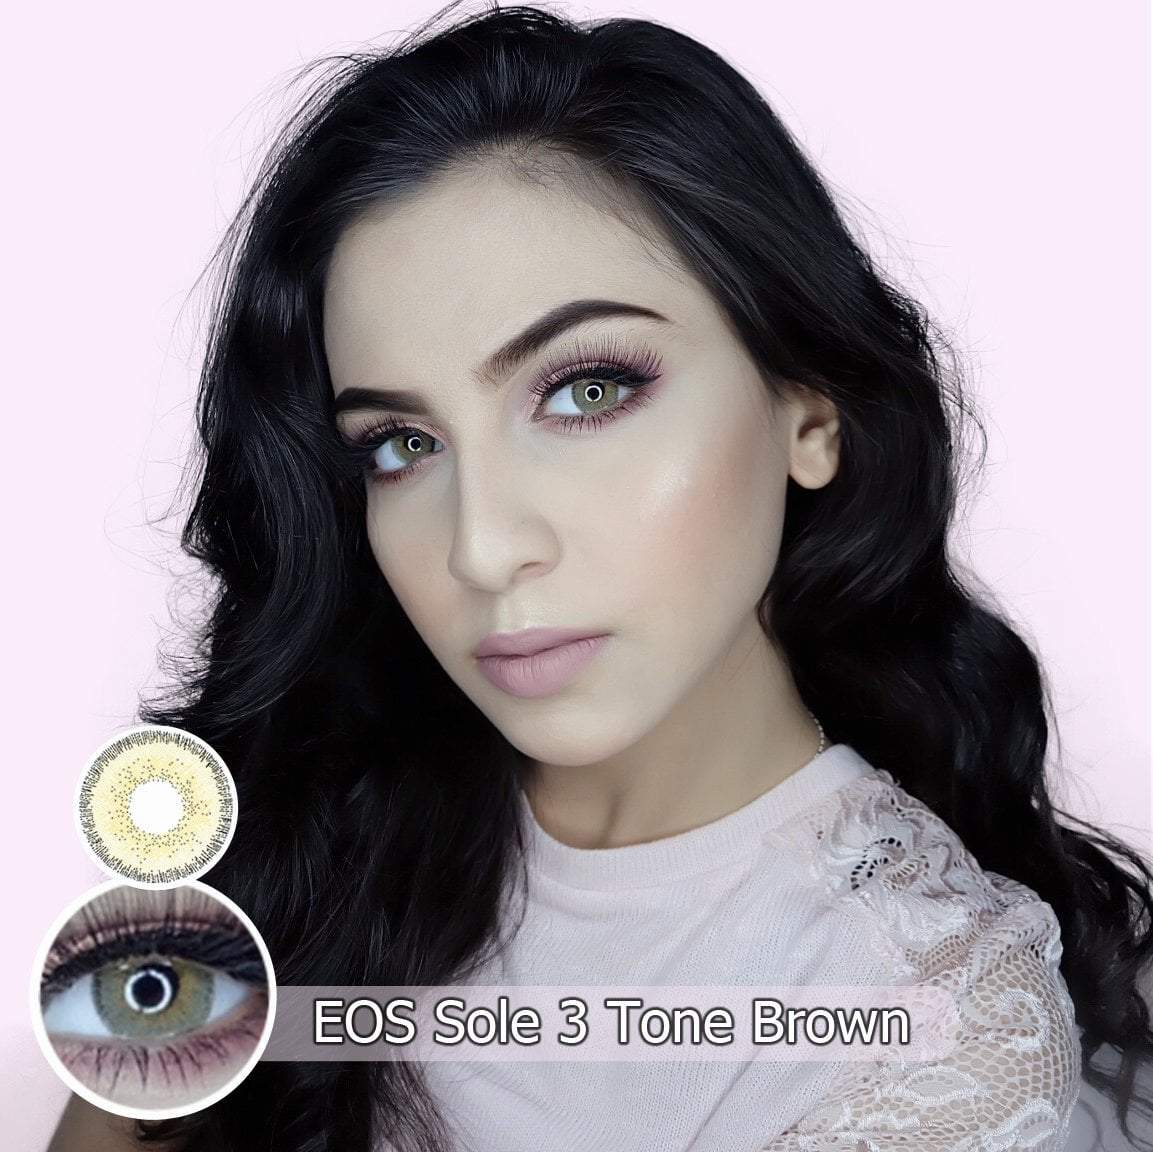 COLORED CONTACTS EOS SOLE 3TONE BROWN - Lens Beauty Queen